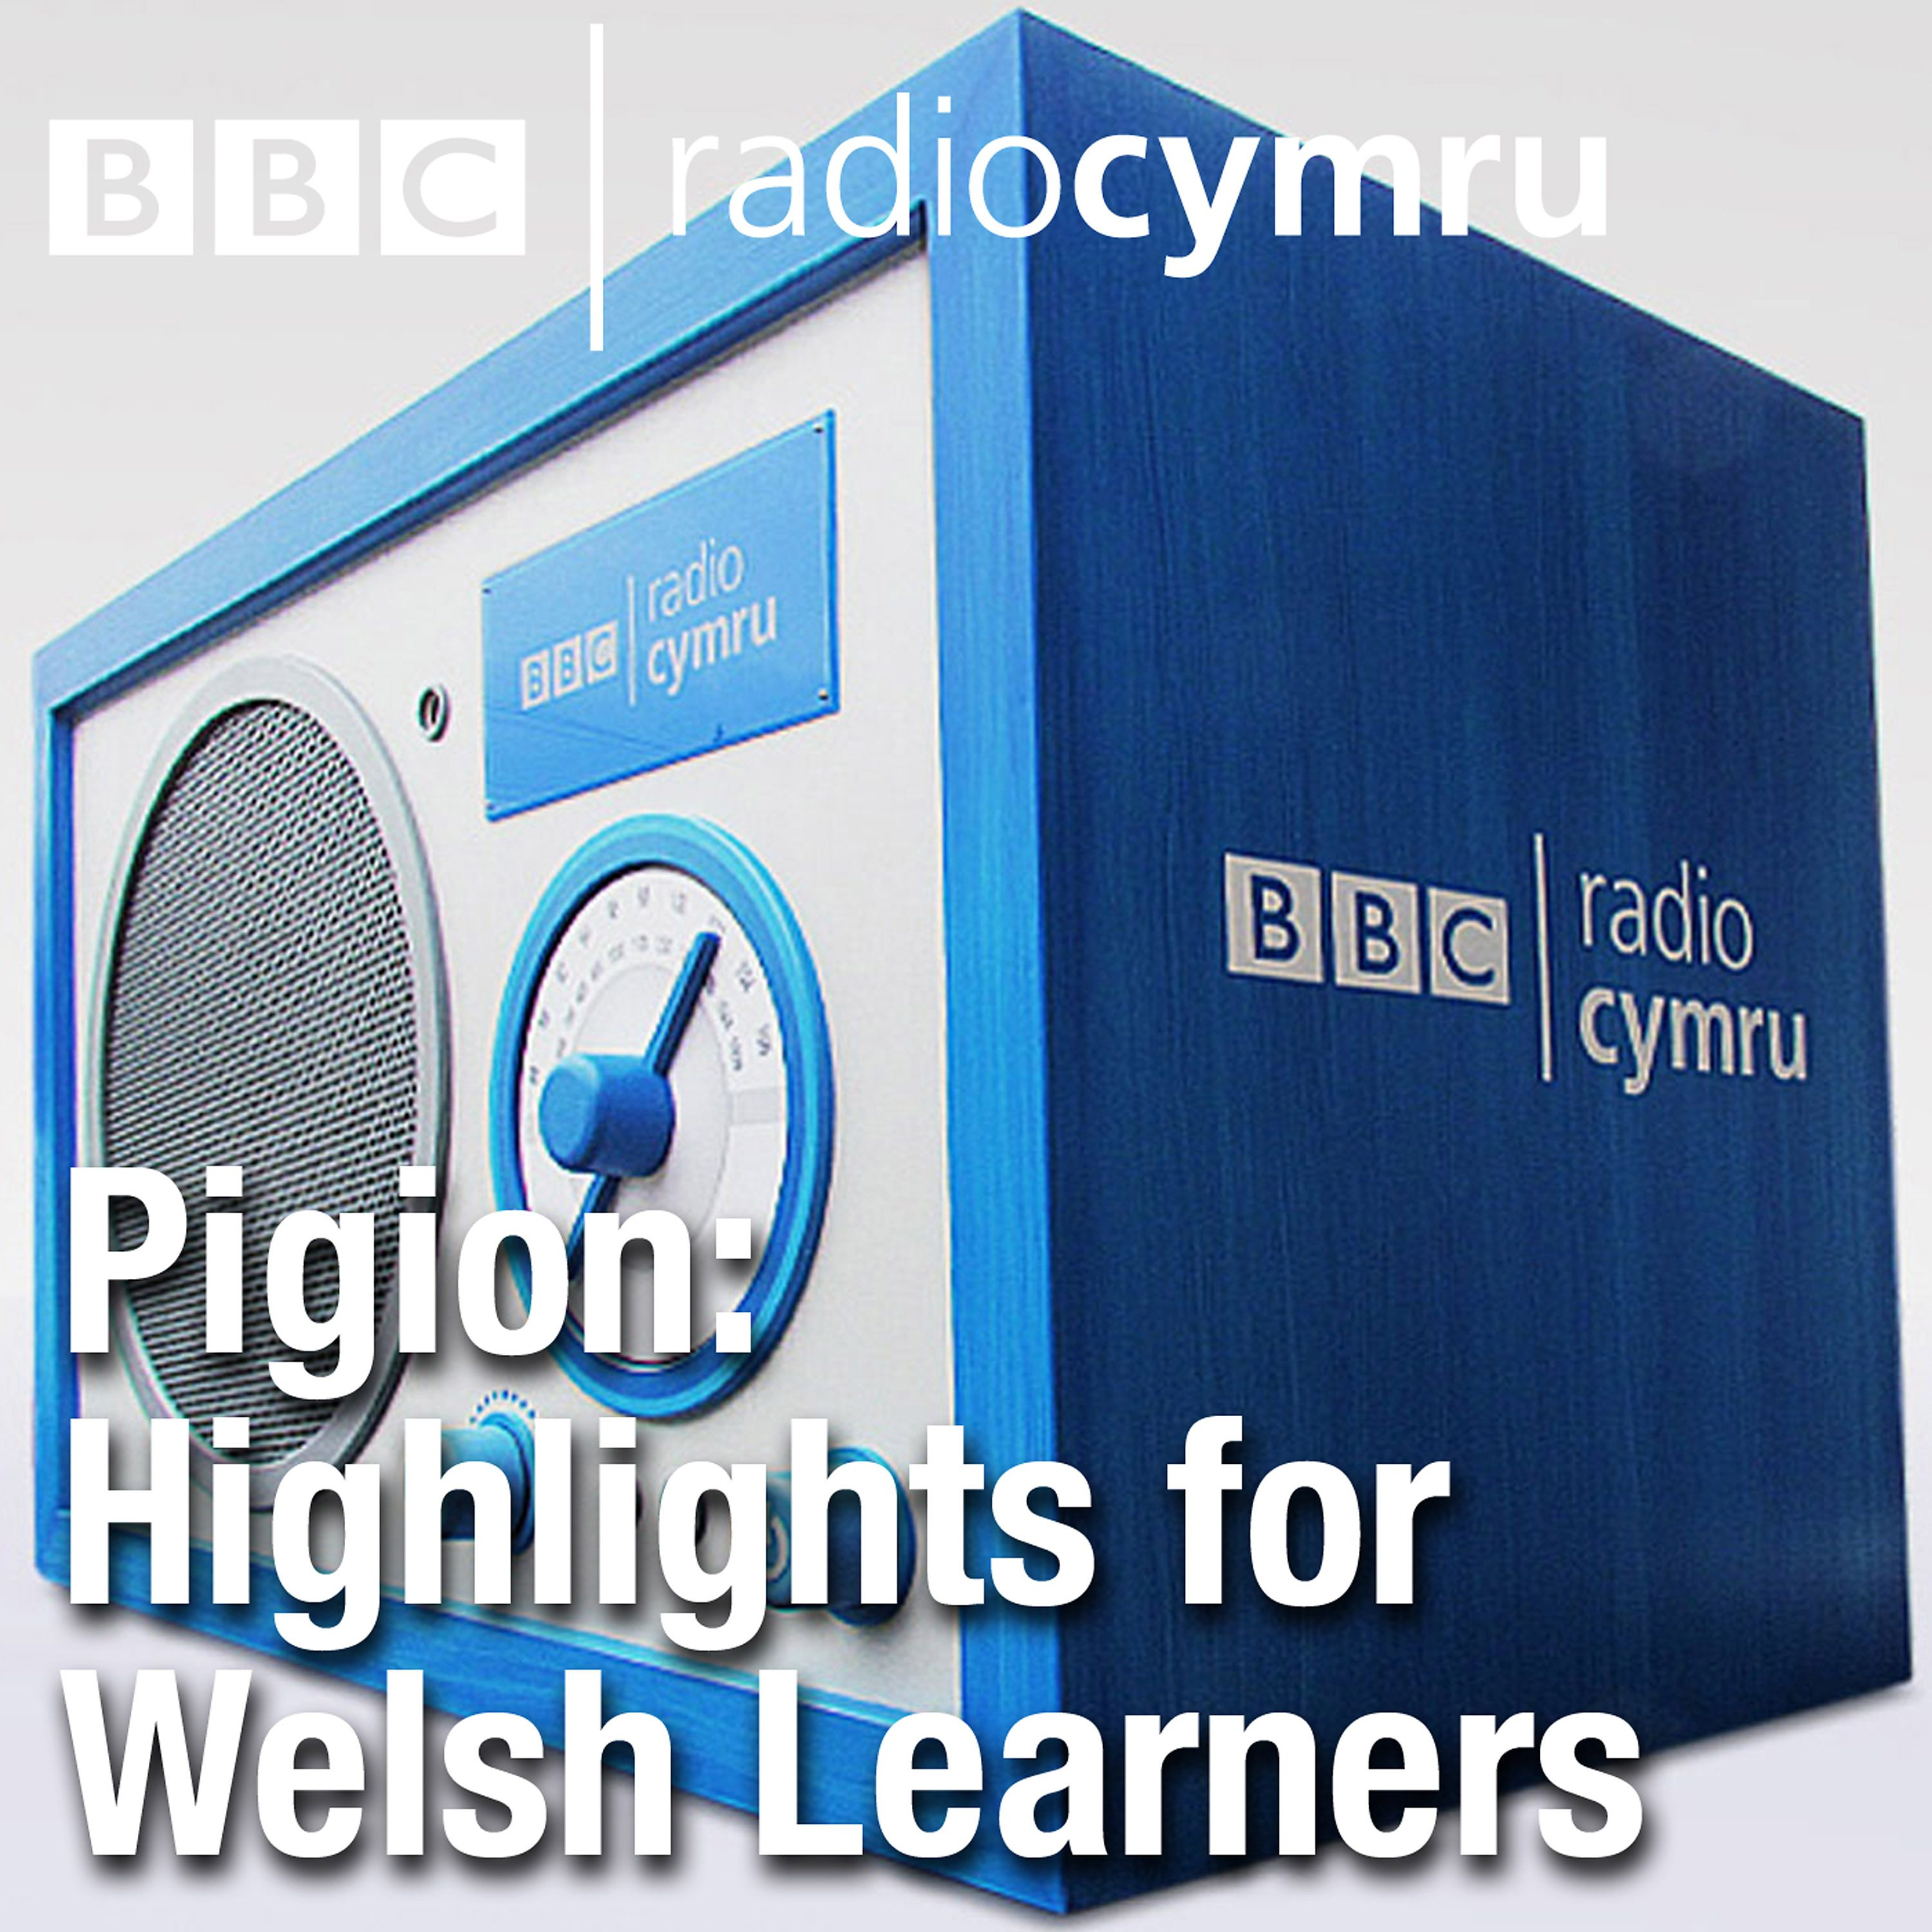 Pigion: Highlights for Welsh Learners